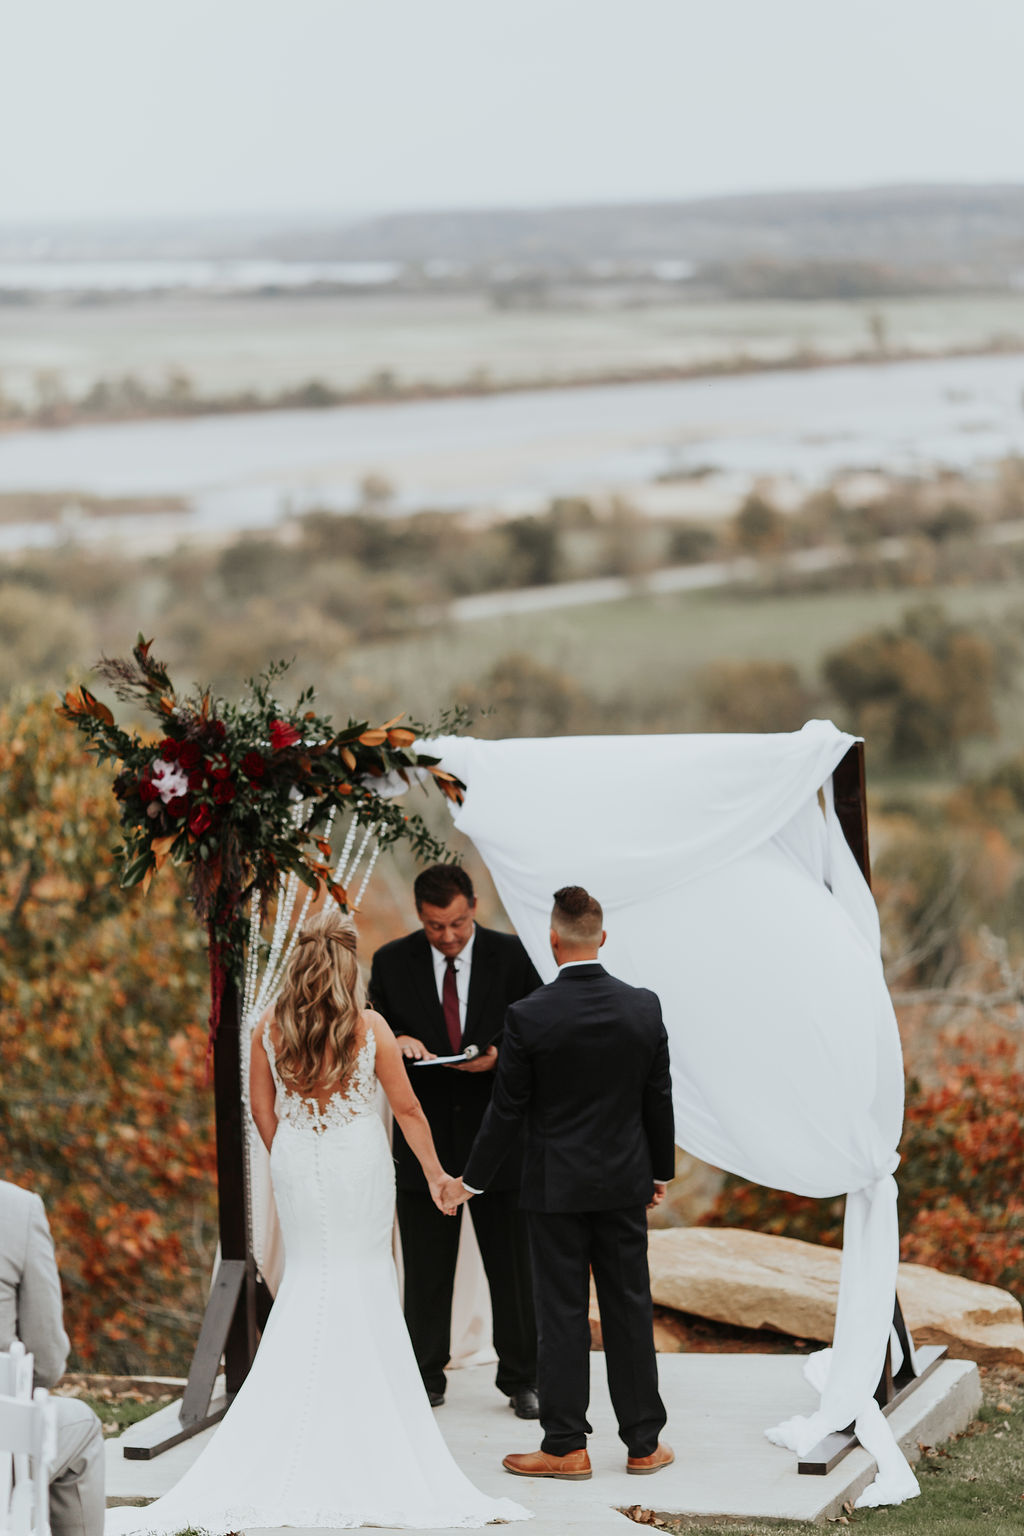 Tulsa Wedding Venue Bixby White Barn 16a.jpg